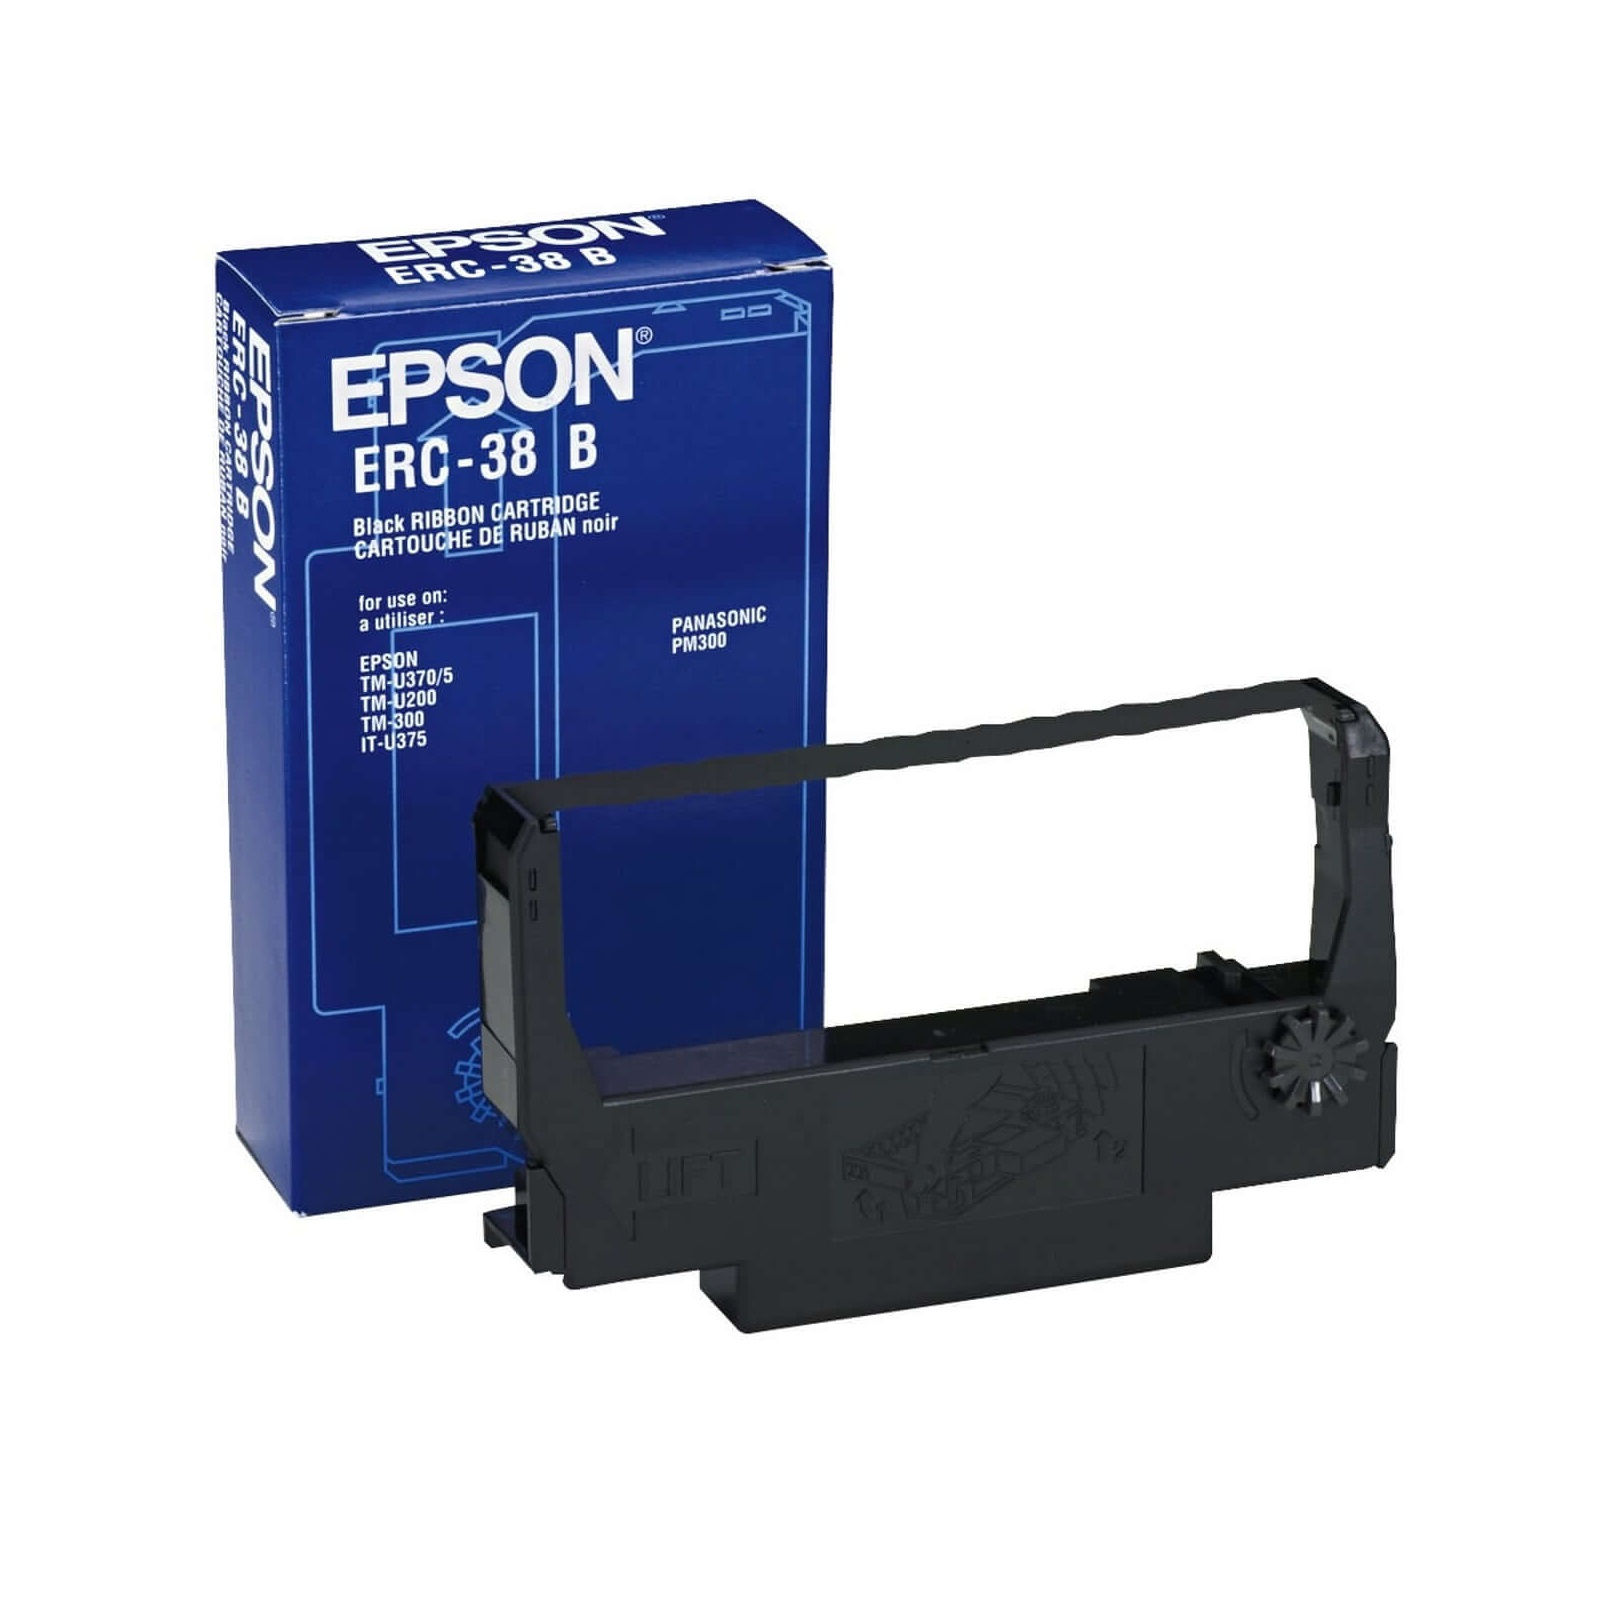 RIBBON ERC-38 B EPSON @ (Available On Order Only)